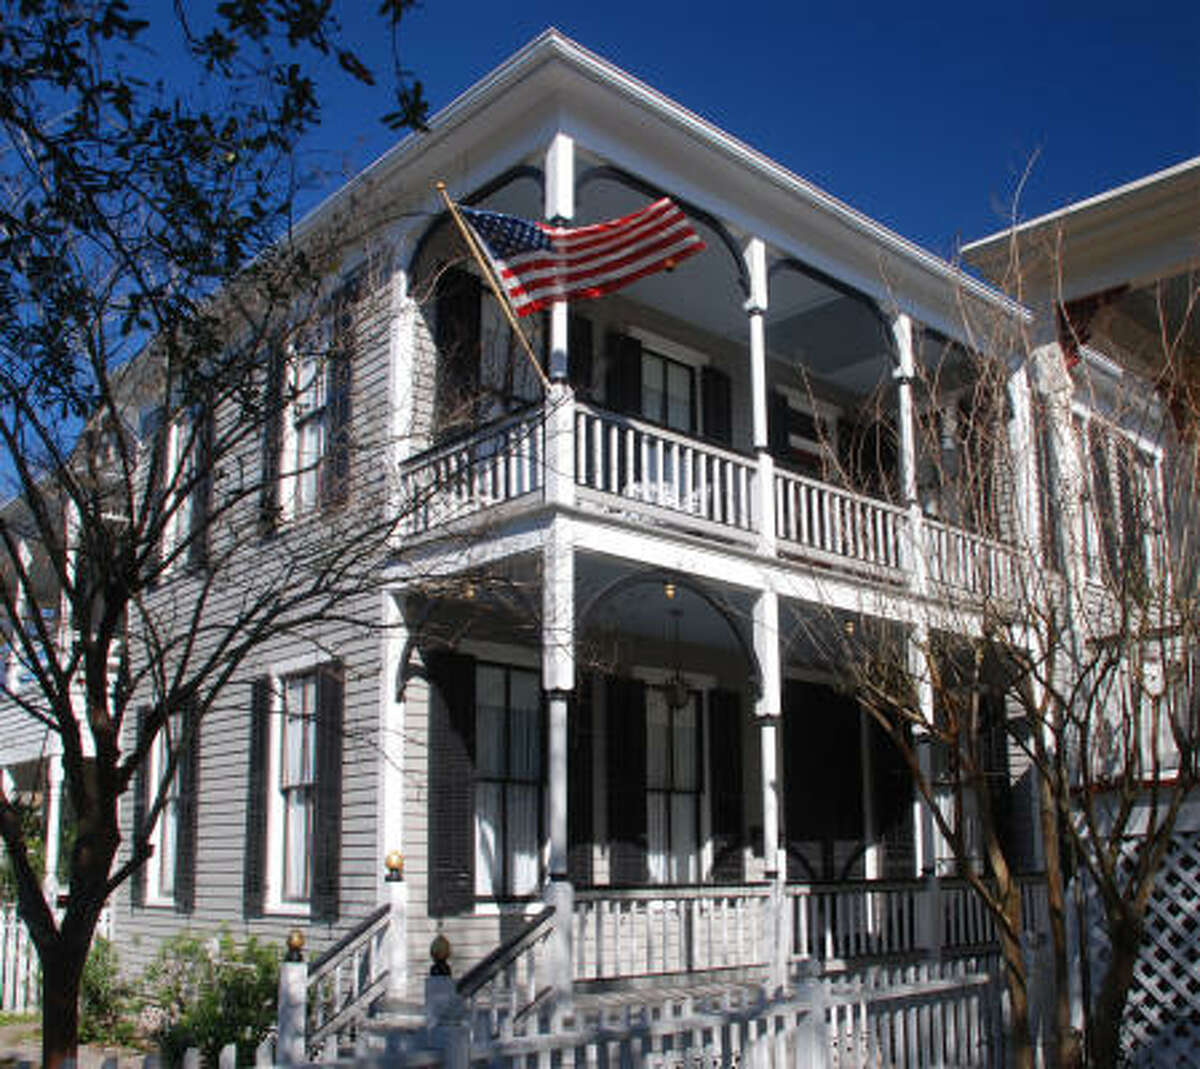 Alfred G. Youens House, 1904; 1512 Rosenberg: Mr. Youens, an insurance inspector, survived the collapse of his home at 24th and Avenue P ½ during the 1900 Storm. He built this two-story, two-bedroom Victorian house as a replacement in an architectural style popular before the storm.